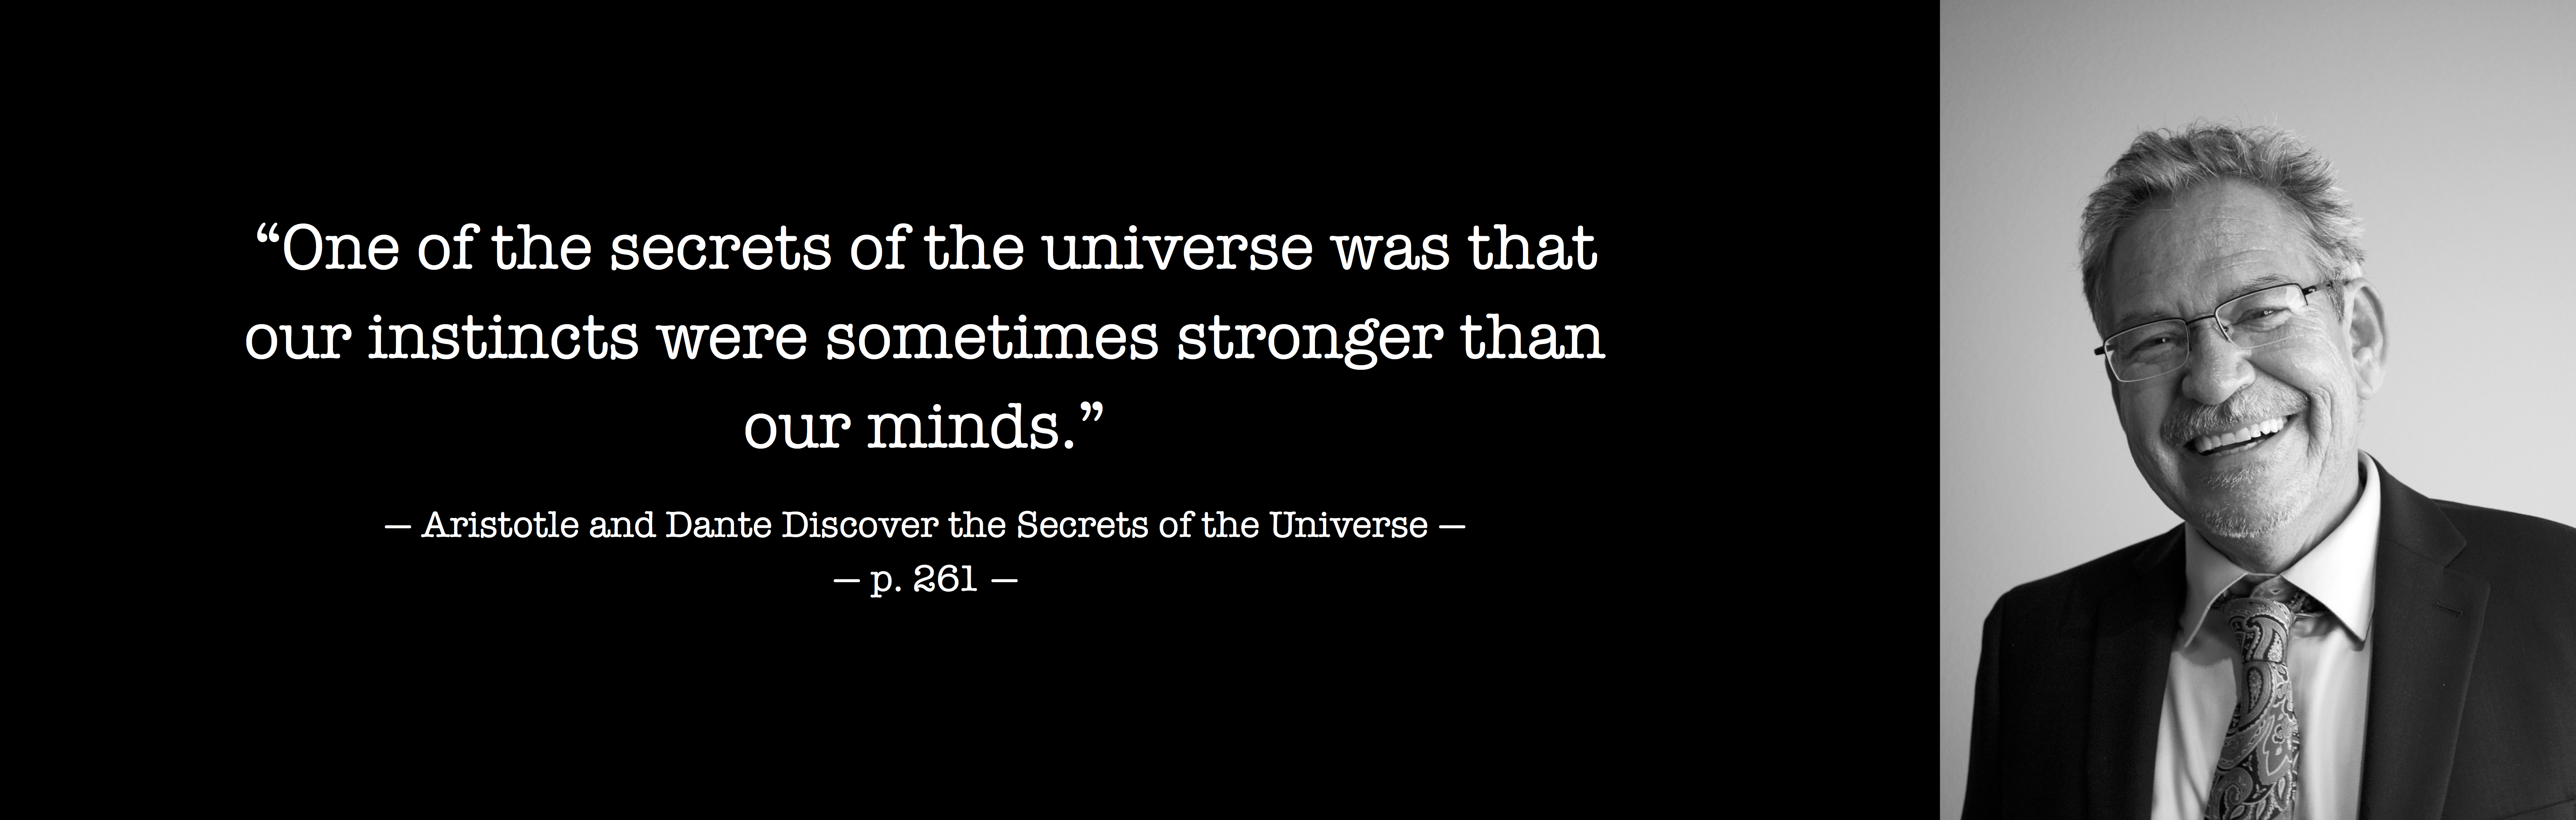 """One of the secrets of the universe was that our instincts were sometimes stronger than our minds."" - Aristotle and Dante Discover the Secrets of the Universe"